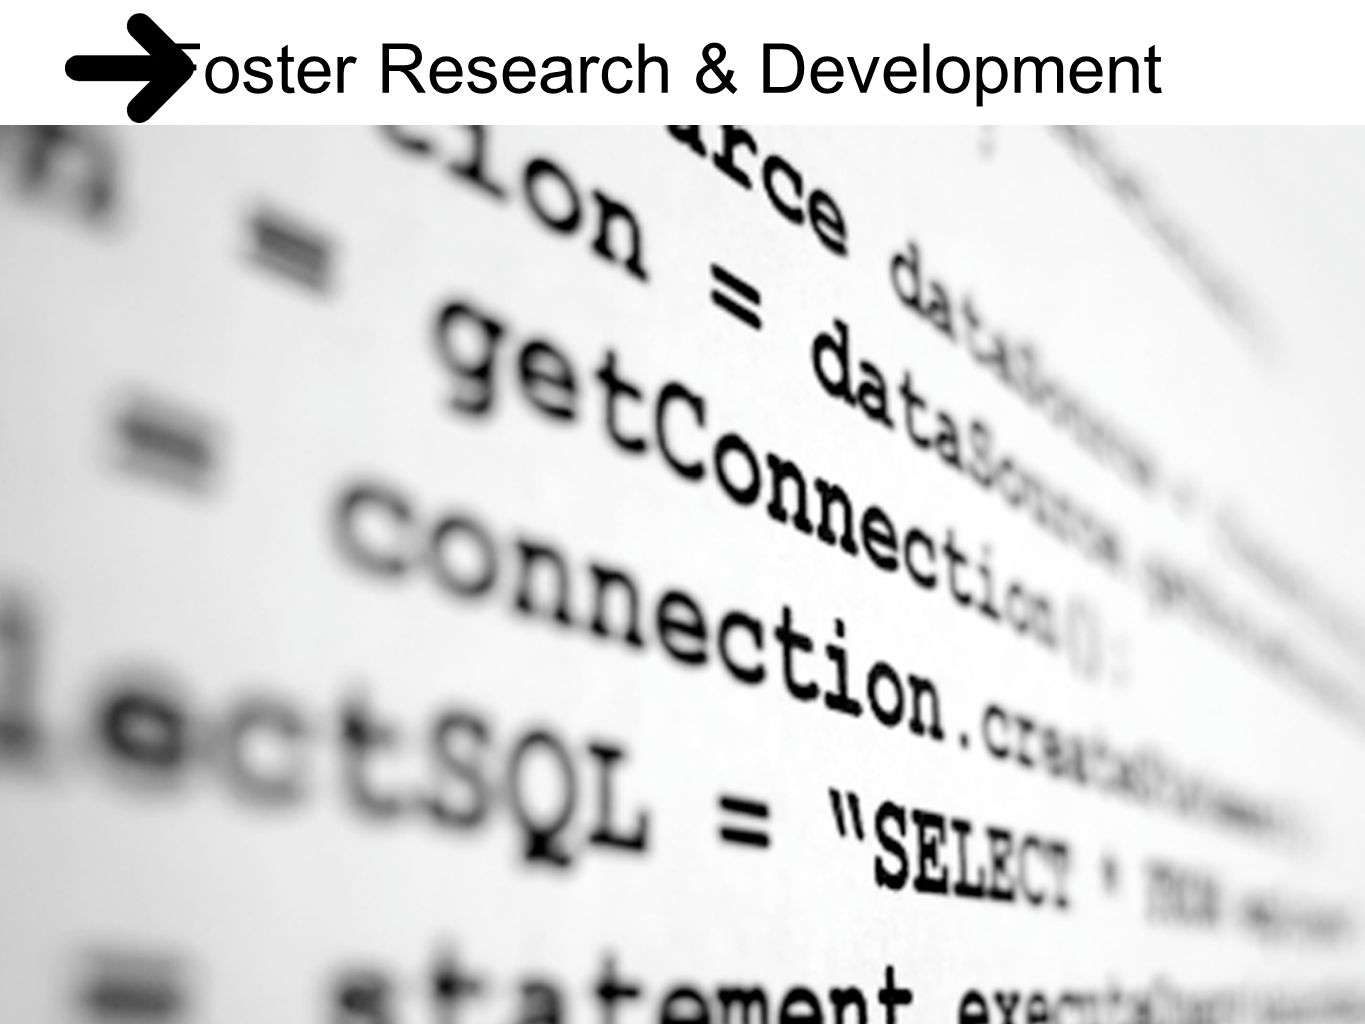 Foster Research & Development